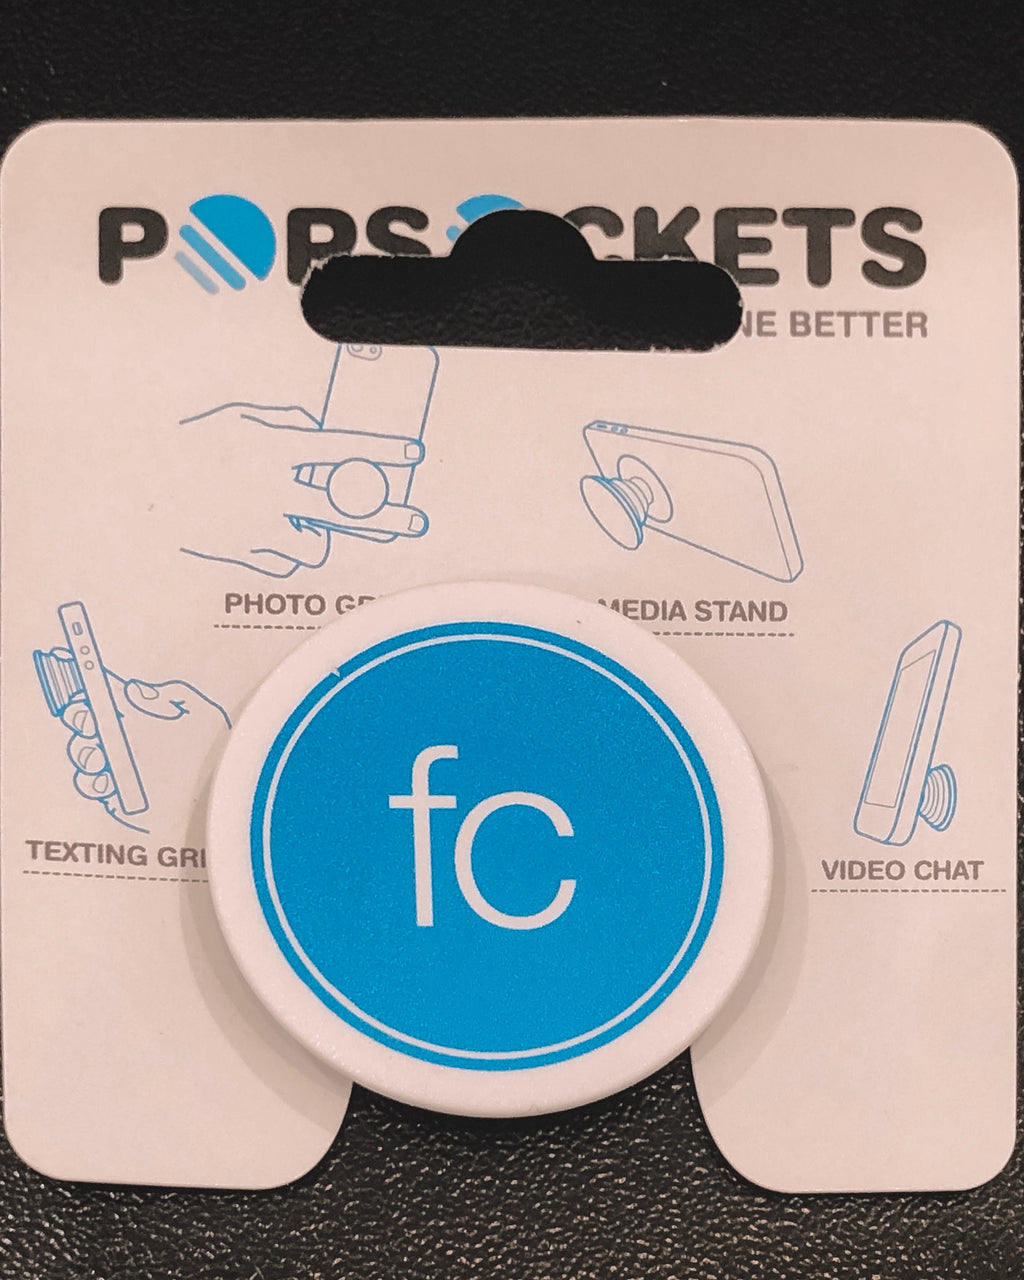 'FC' pop socket